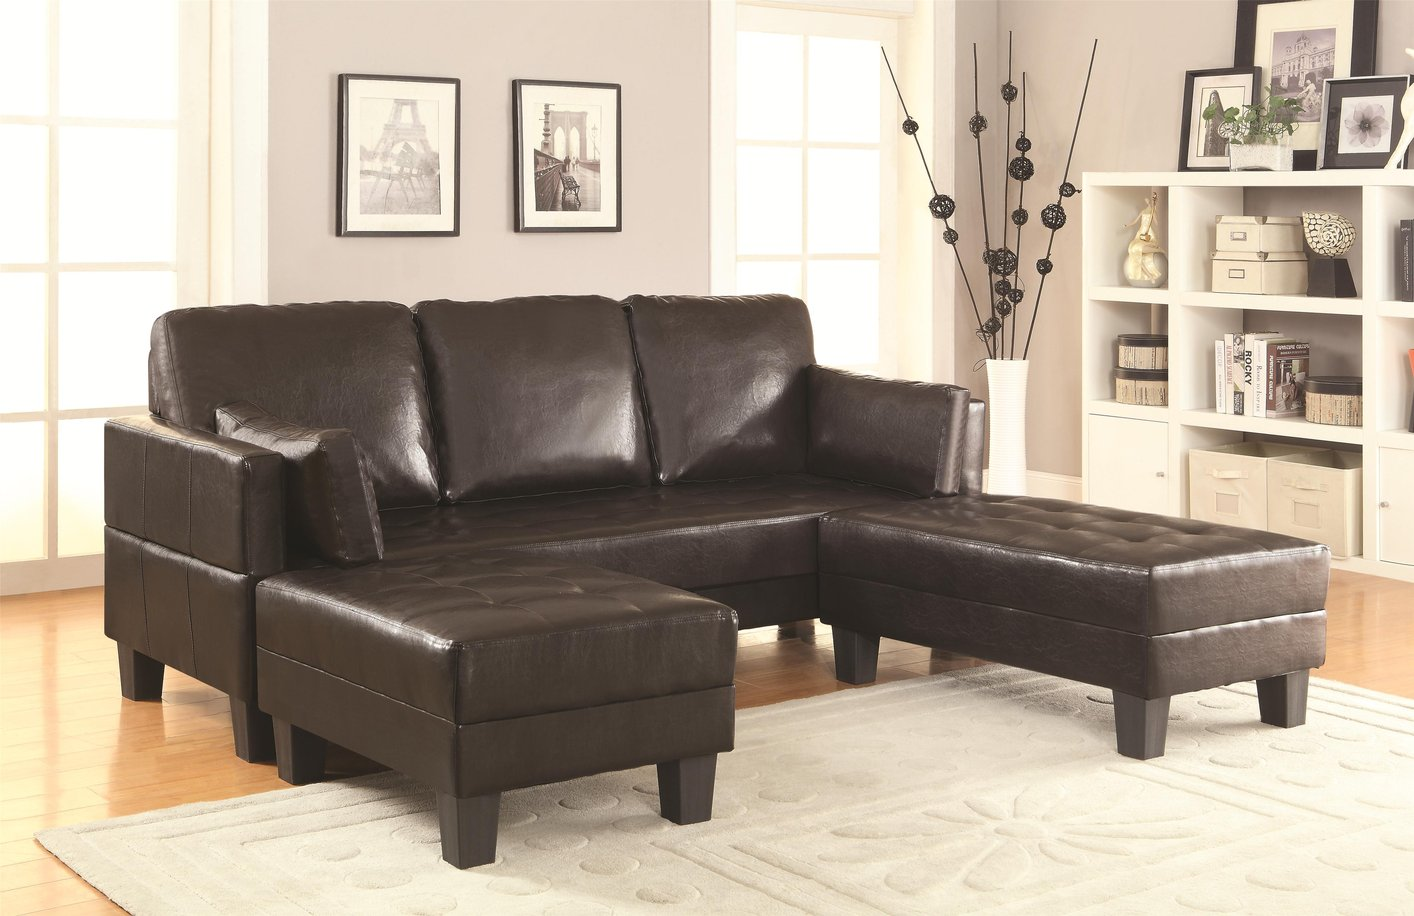 Coaster 300204 Brown Leather Sofa Bed And Ottoman Set Steal A Sofa Furniture Outlet Los Angeles Ca